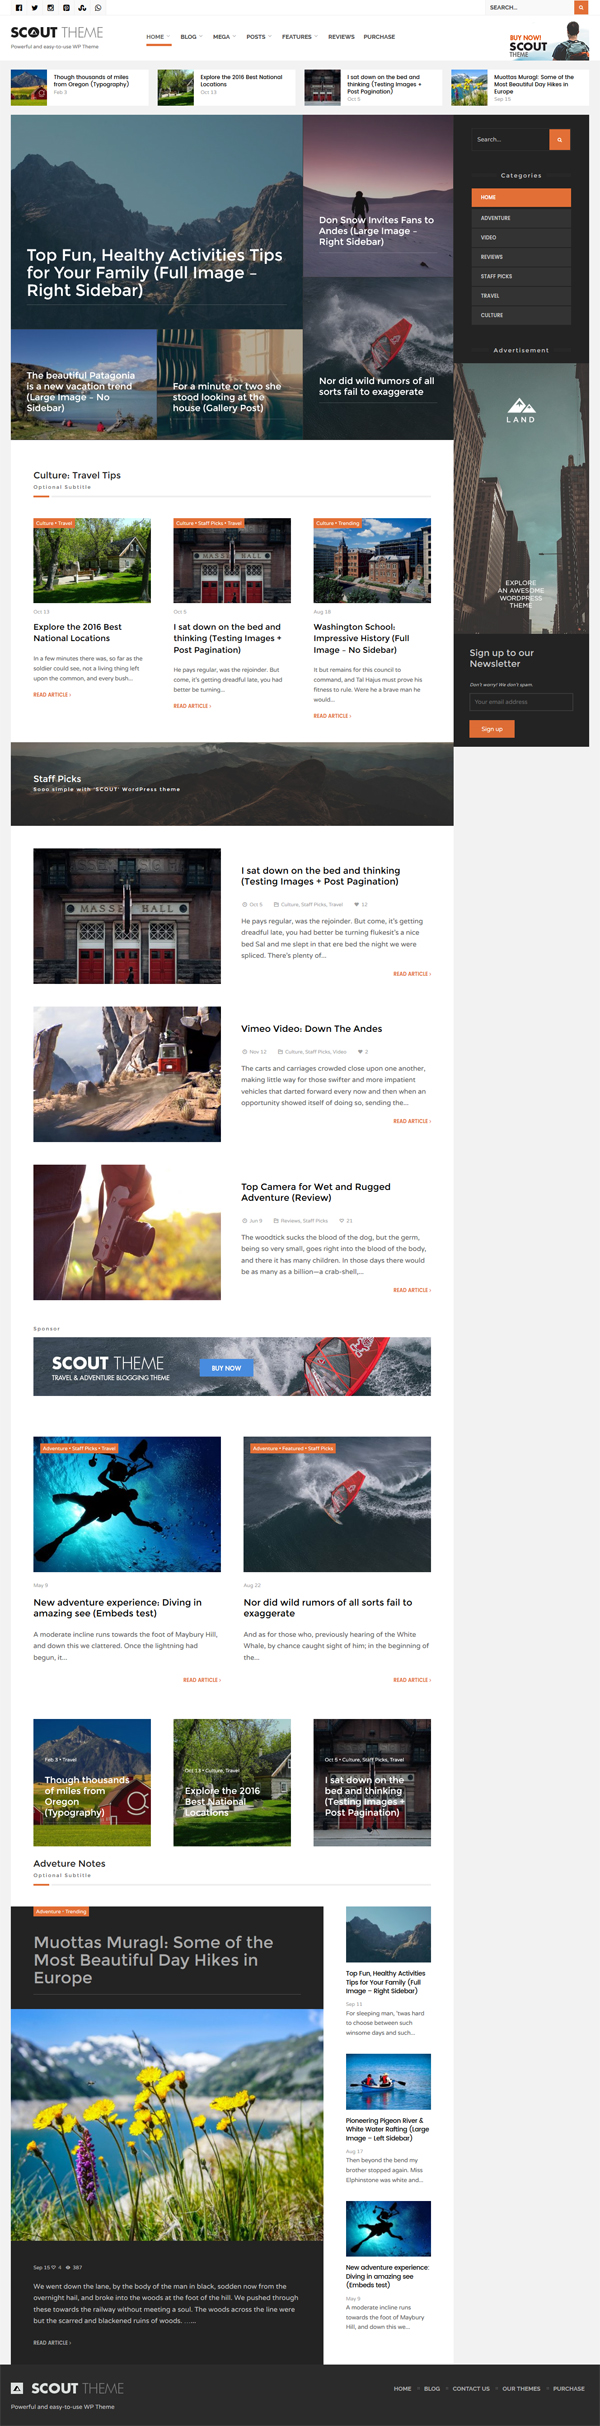 Scout - Adventure / Activity Blog WordPress Theme